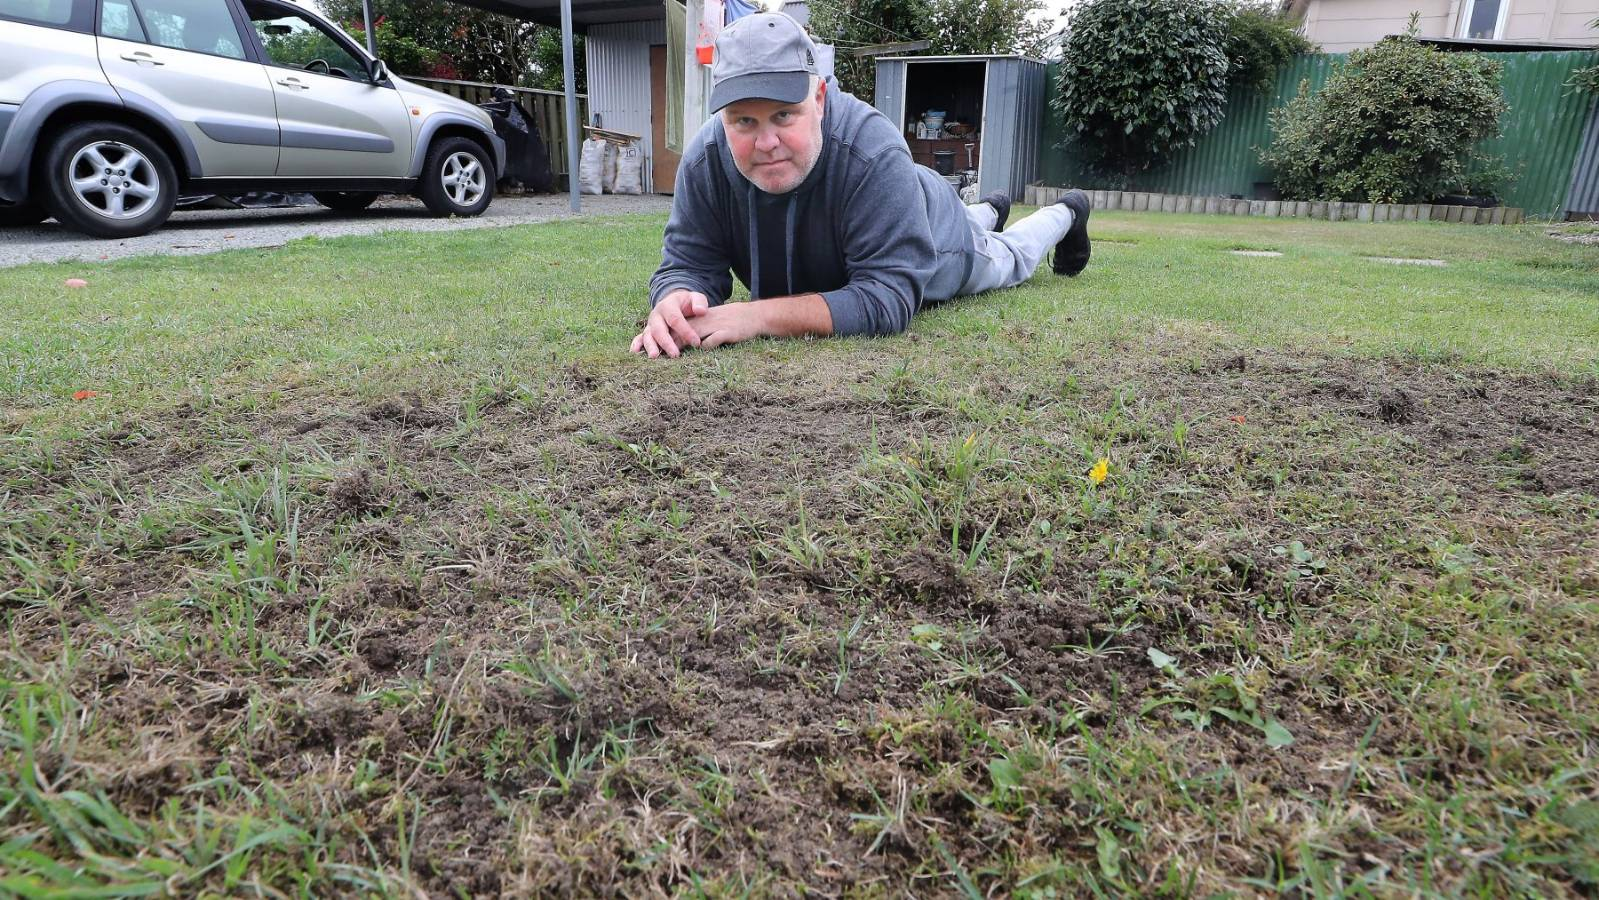 Gardeners are at their wit's over major grass grubs infestation